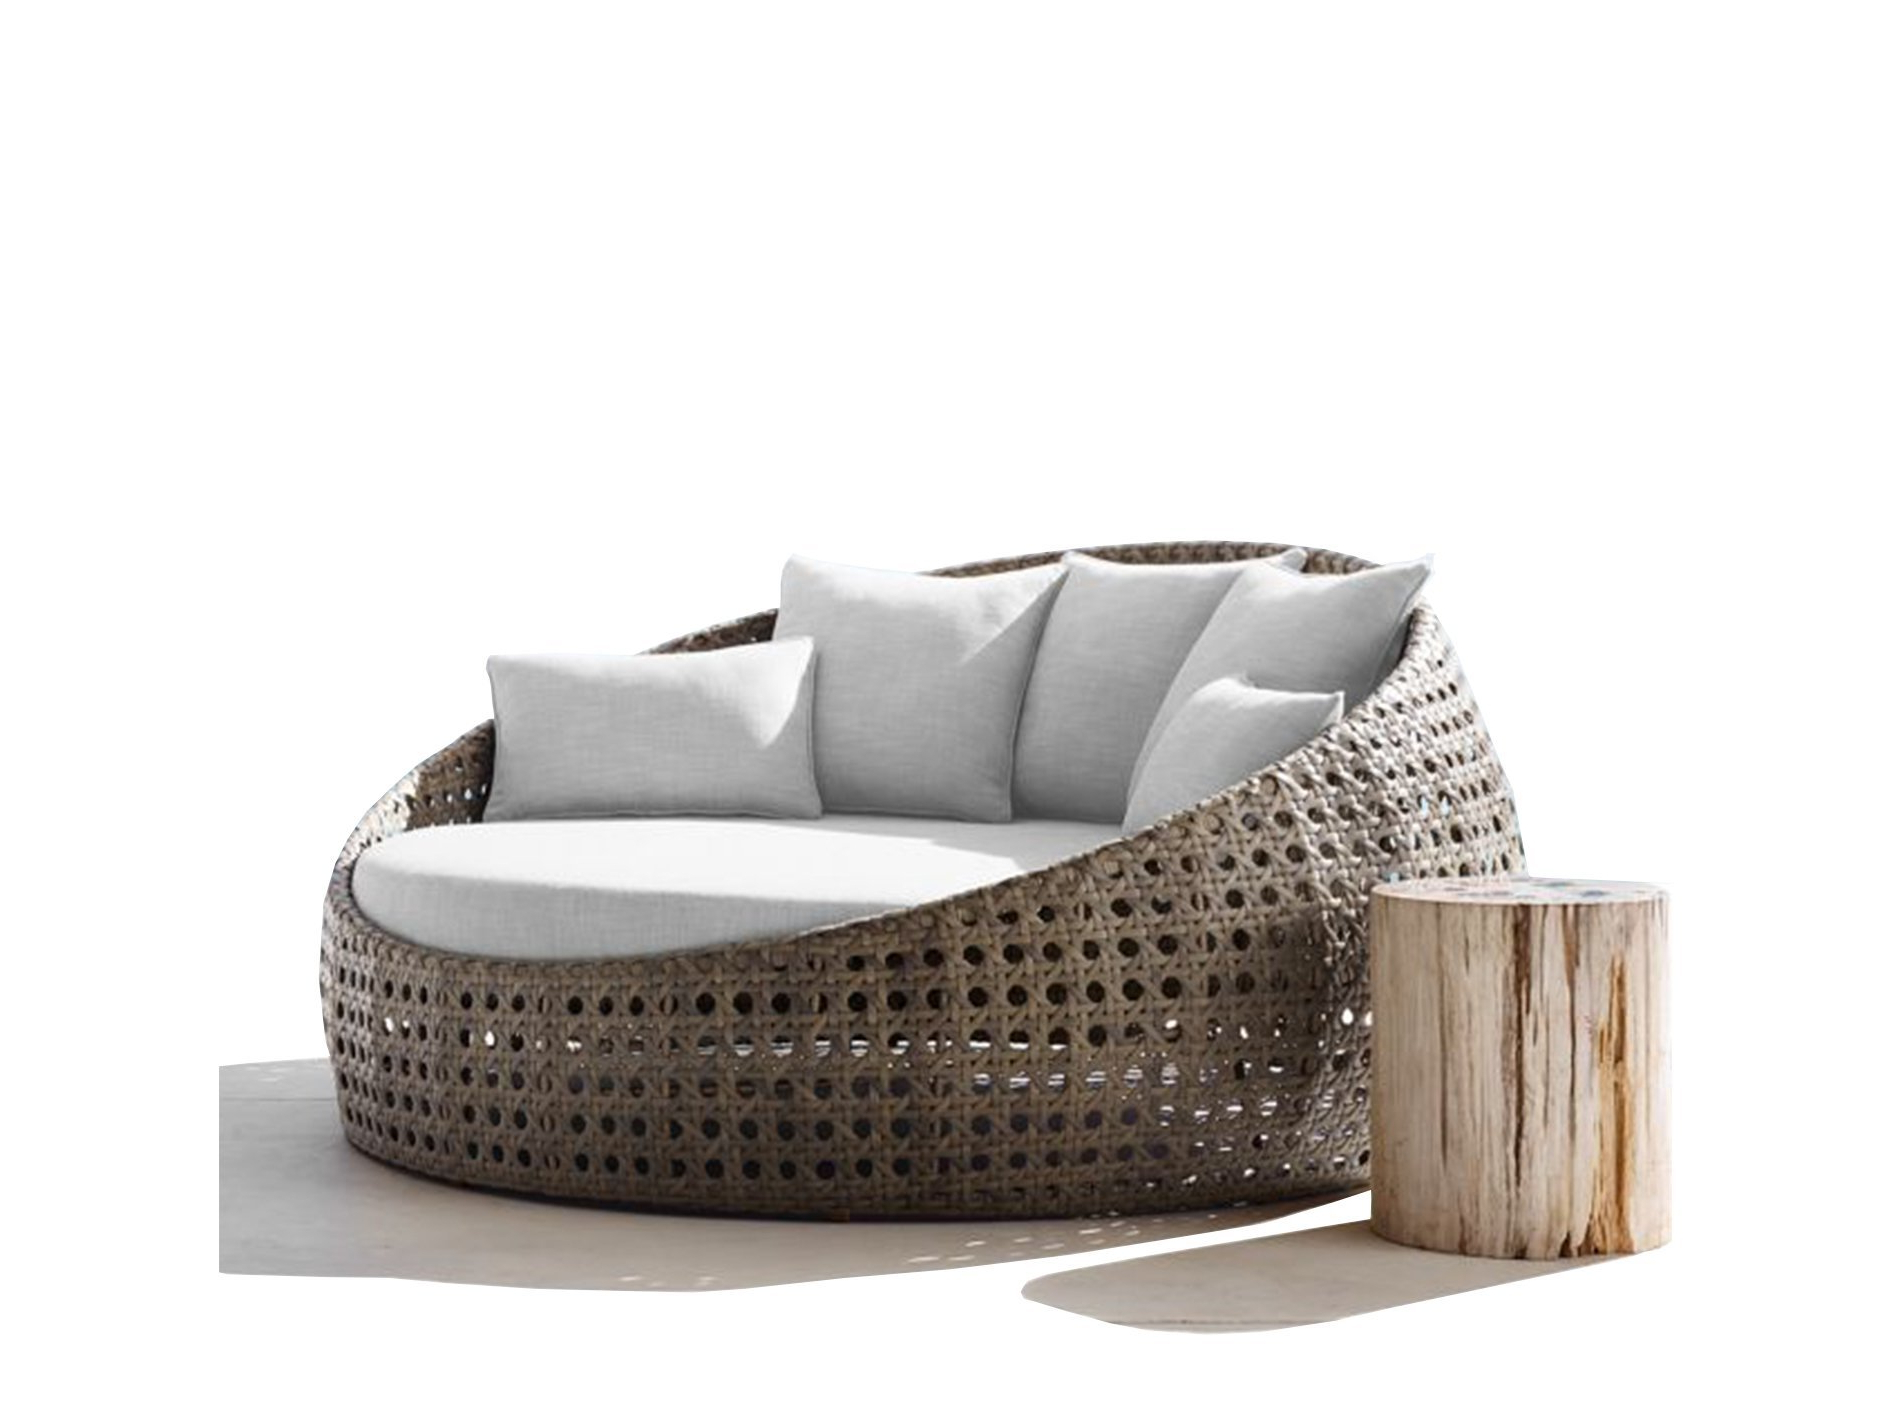 Outdoor Day Bed Encourage Round Replacement Cushions Within Well Known Ellanti Patio Daybeds With Cushions (Gallery 9 of 25)